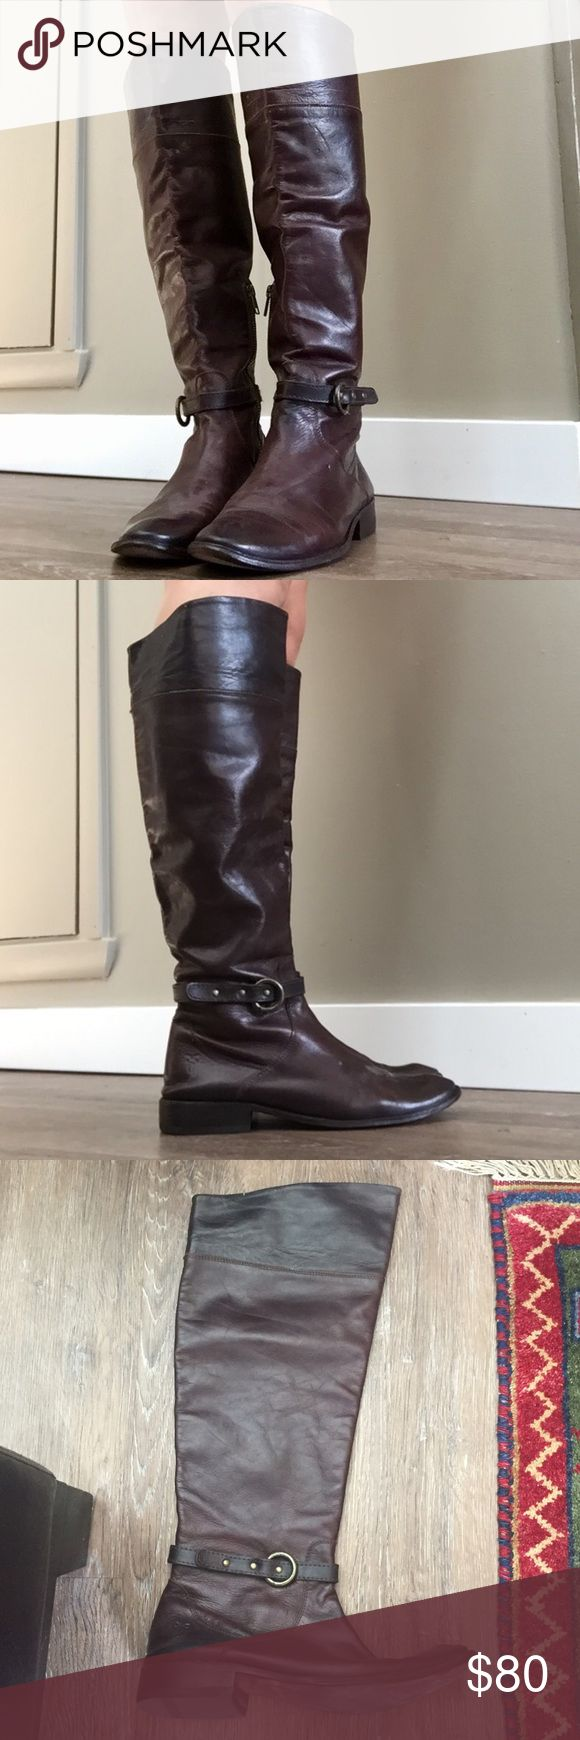 Frye Riding Boot Frye riding boot Frye Shoes Winter & Rain Boots